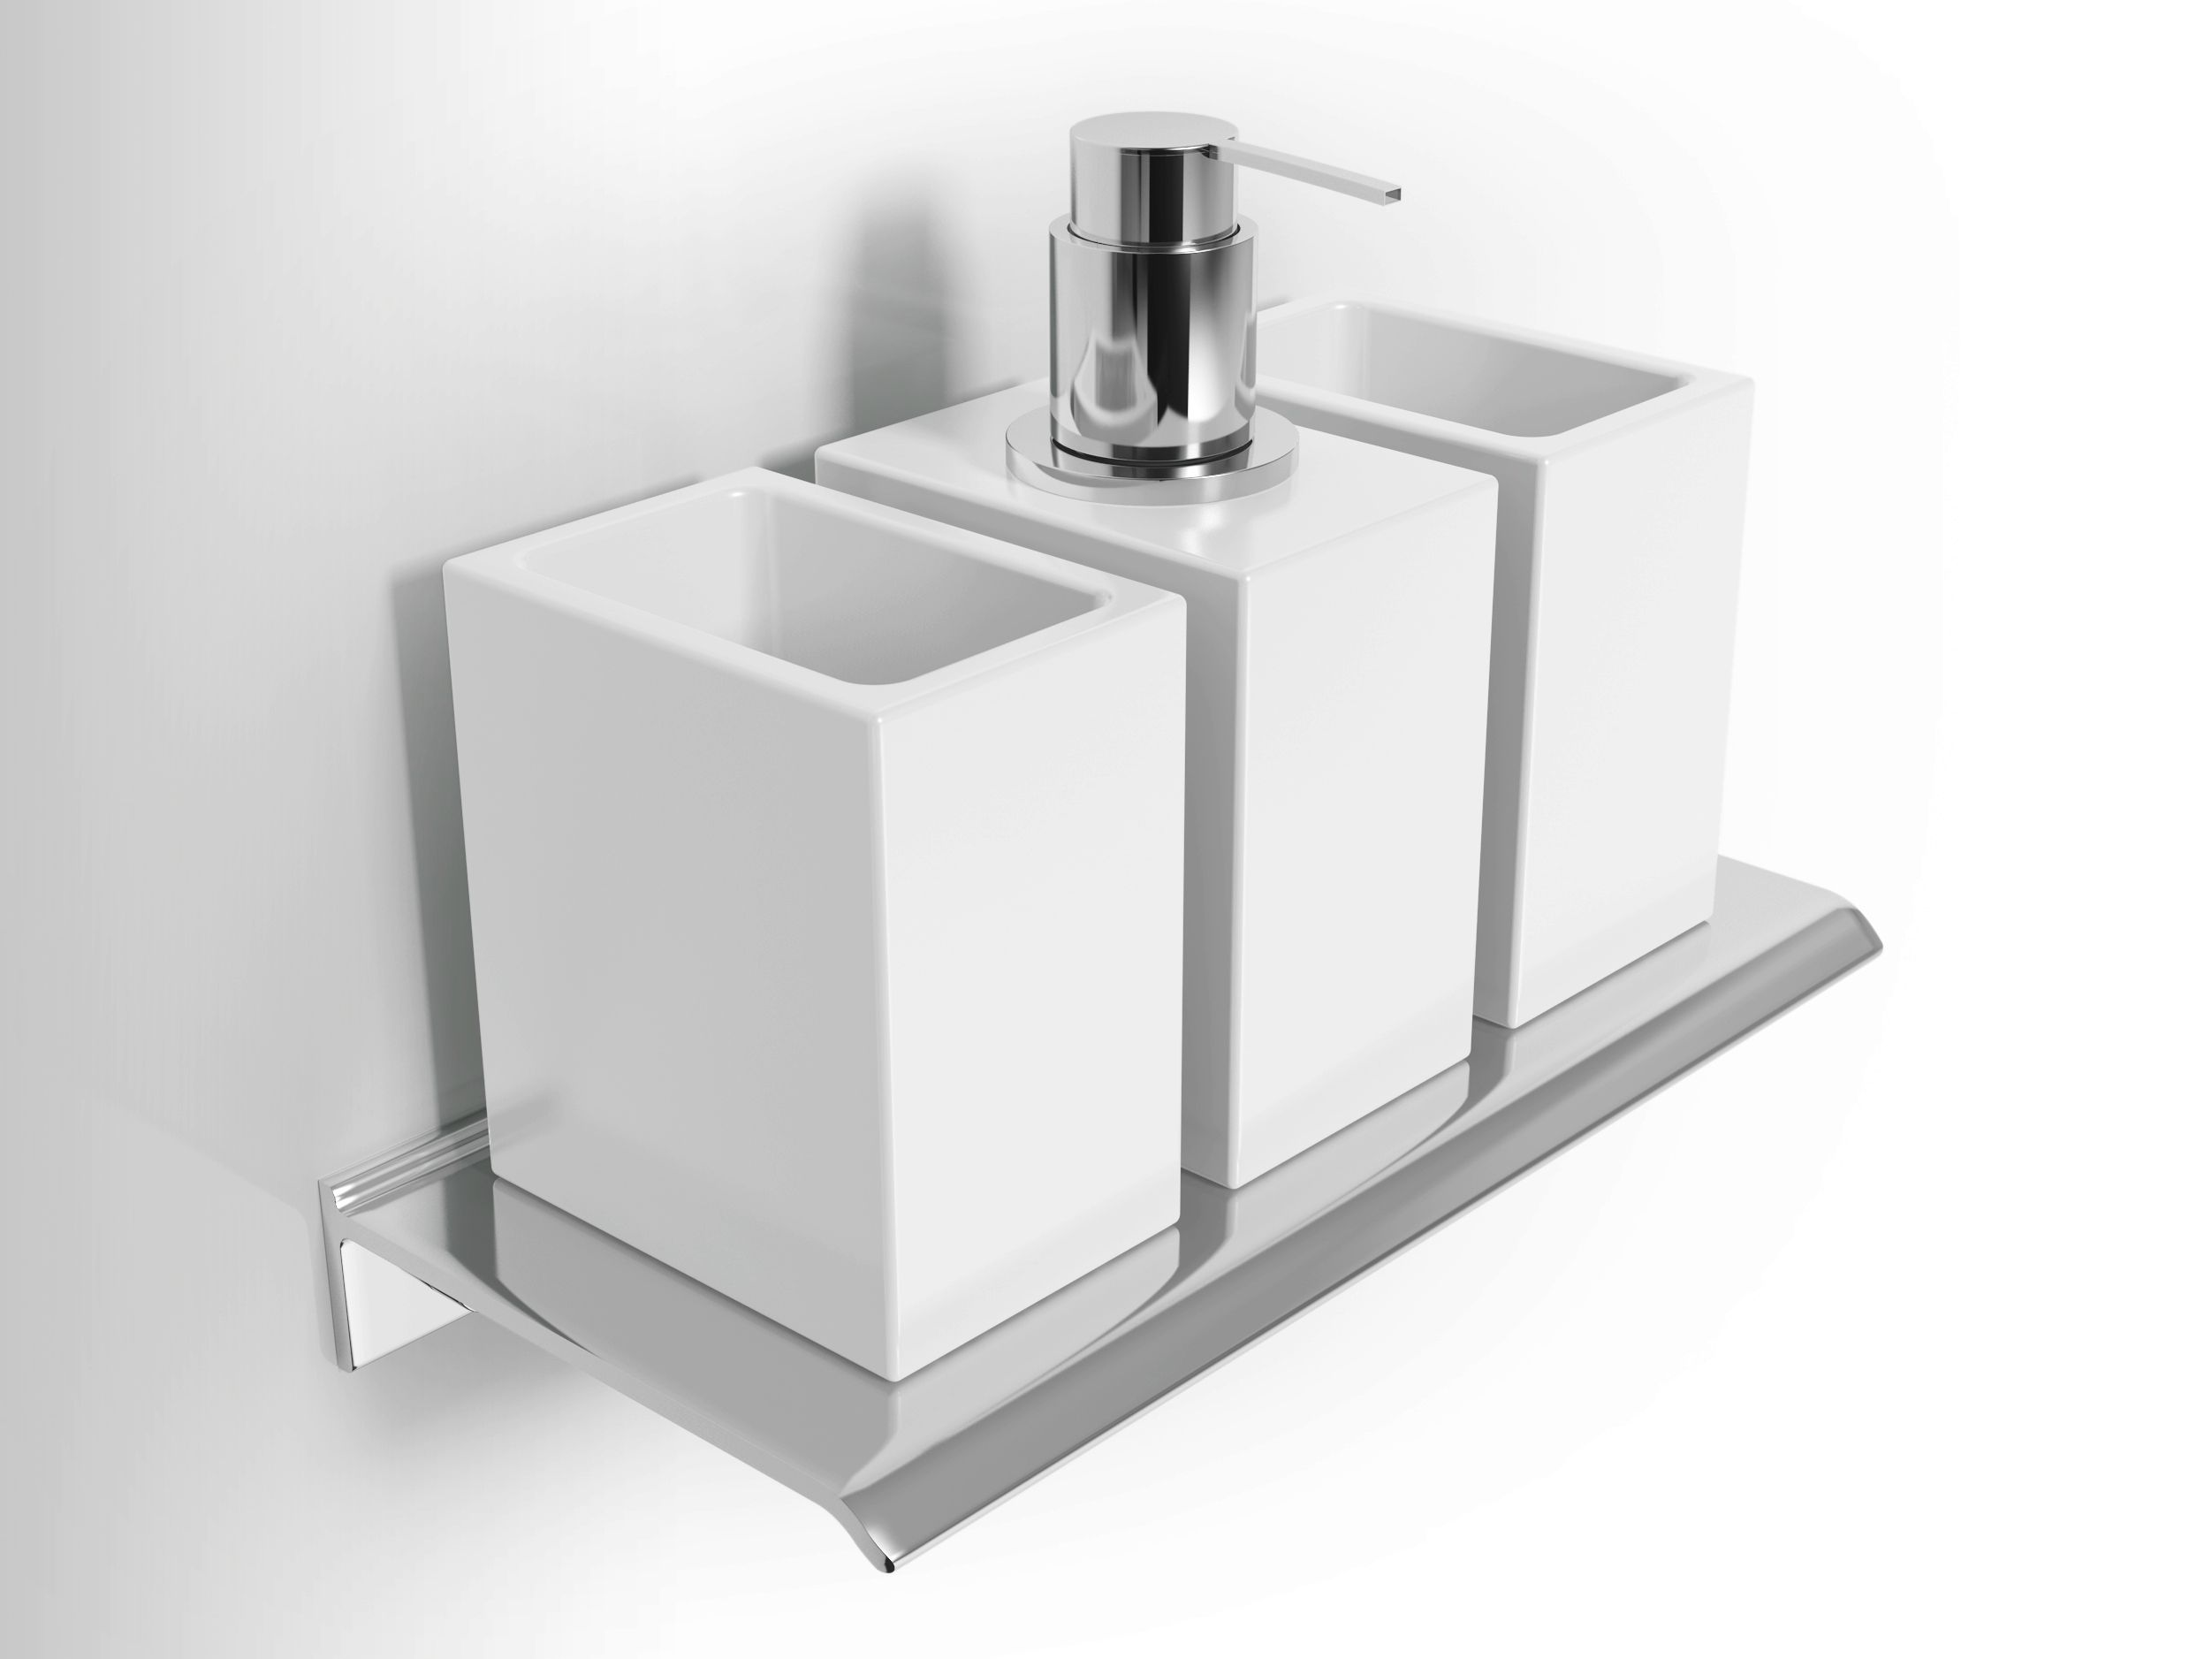 Wall Mounted Soap Dispenser And Toothbrush Holder Wall Mounted